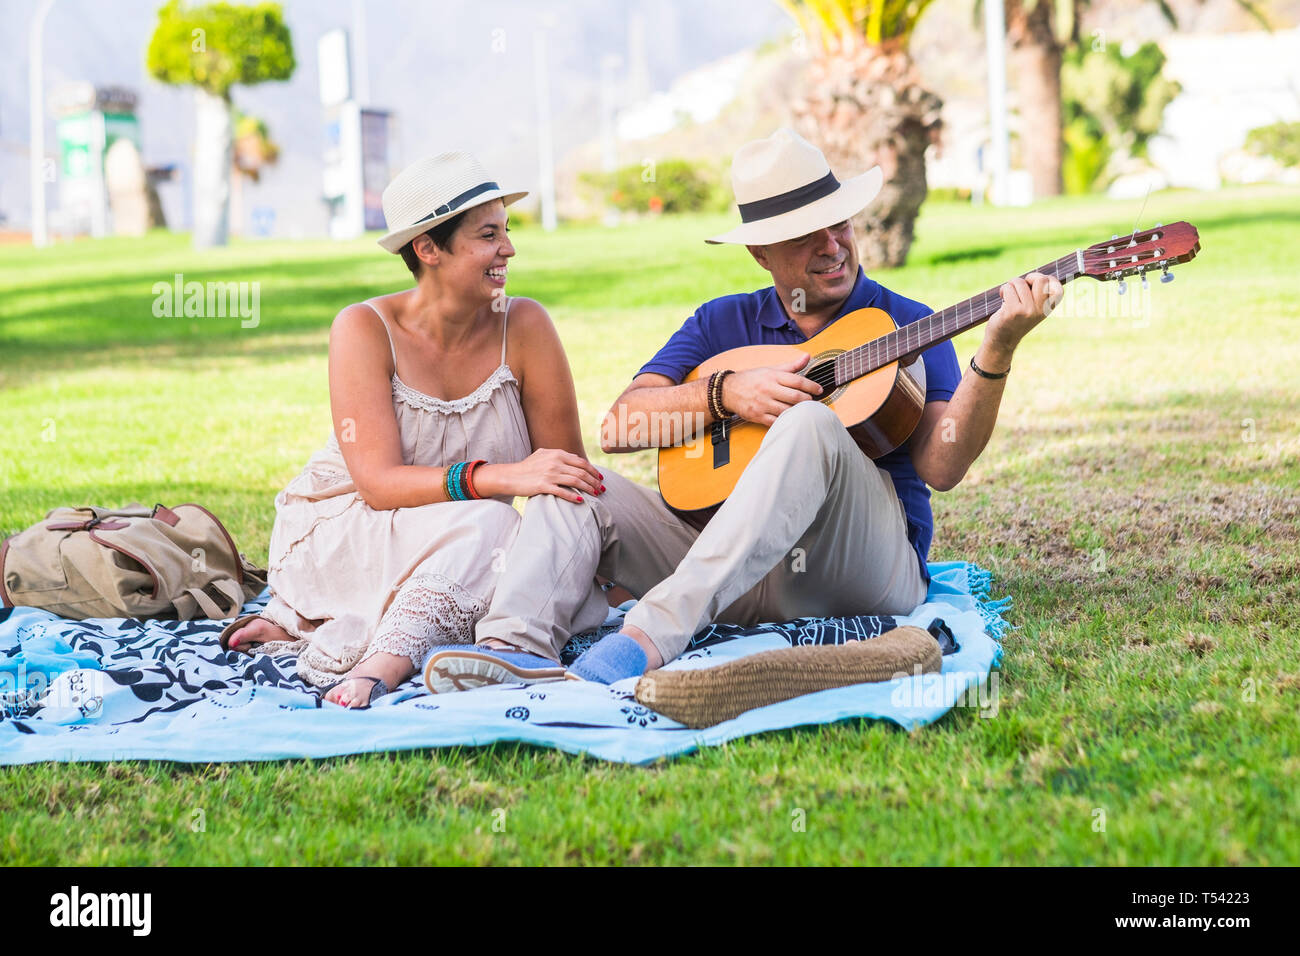 Romantic happy nice caucasian couple people playing a guitar for romantic activity sitting on a meadow in outdoor nature park together - love and rela Stock Photo